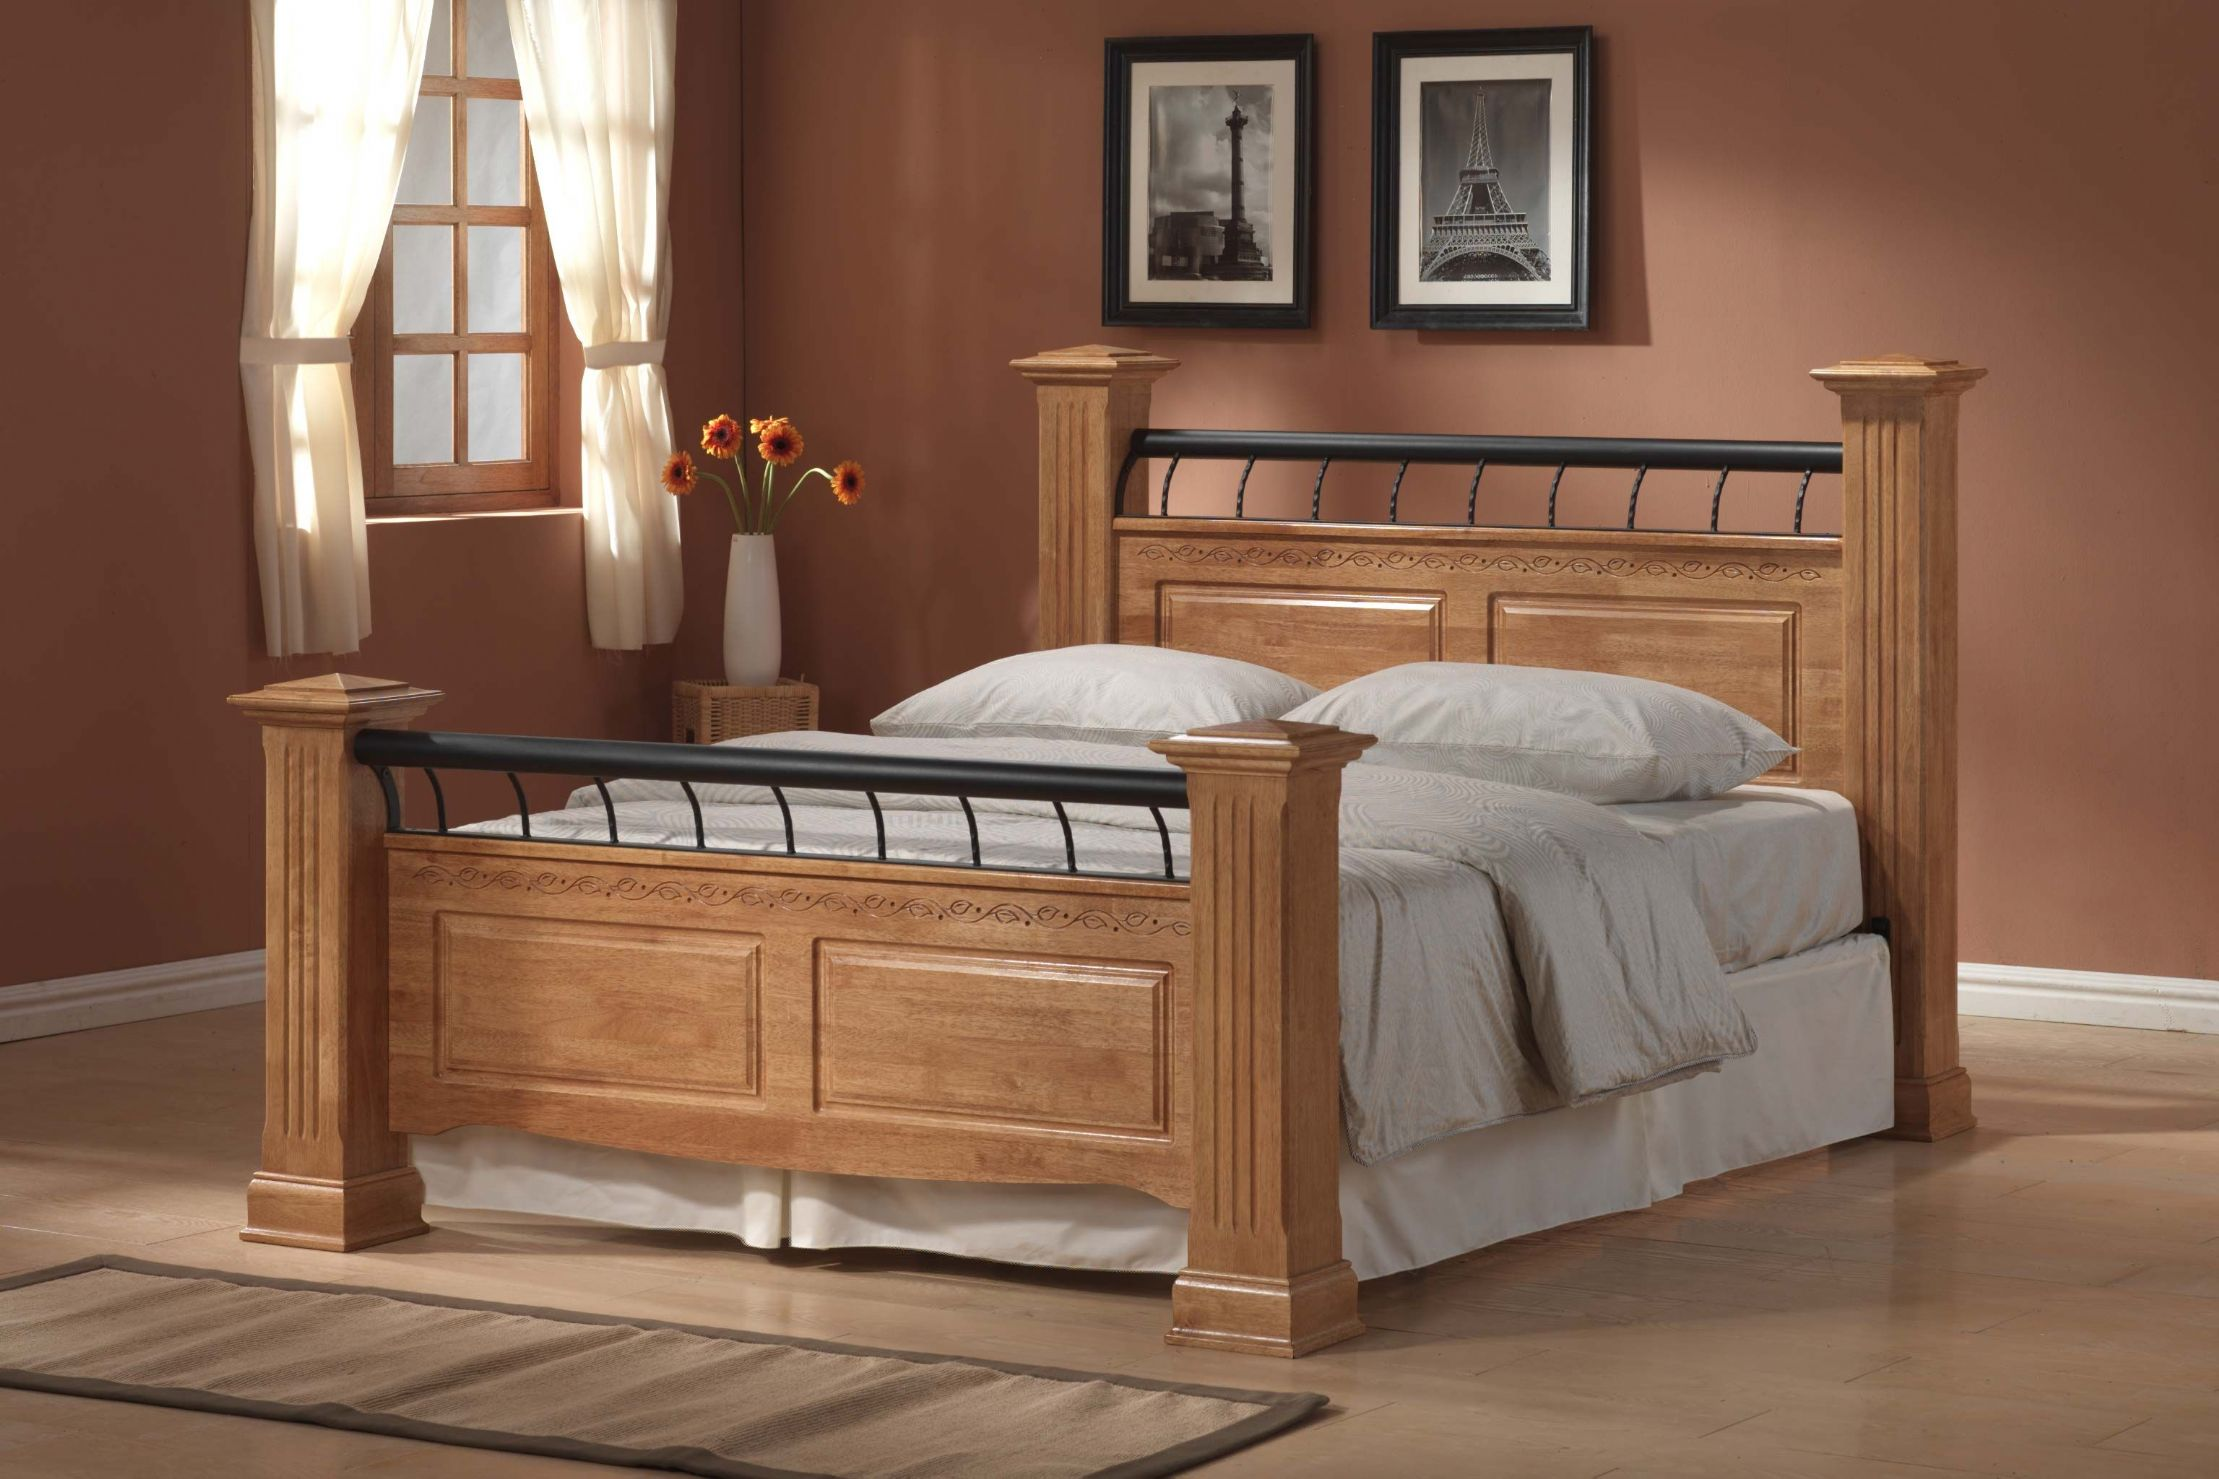 Collection full size of bed frames:bed frames queen wooden king size bed frame king scndhmz